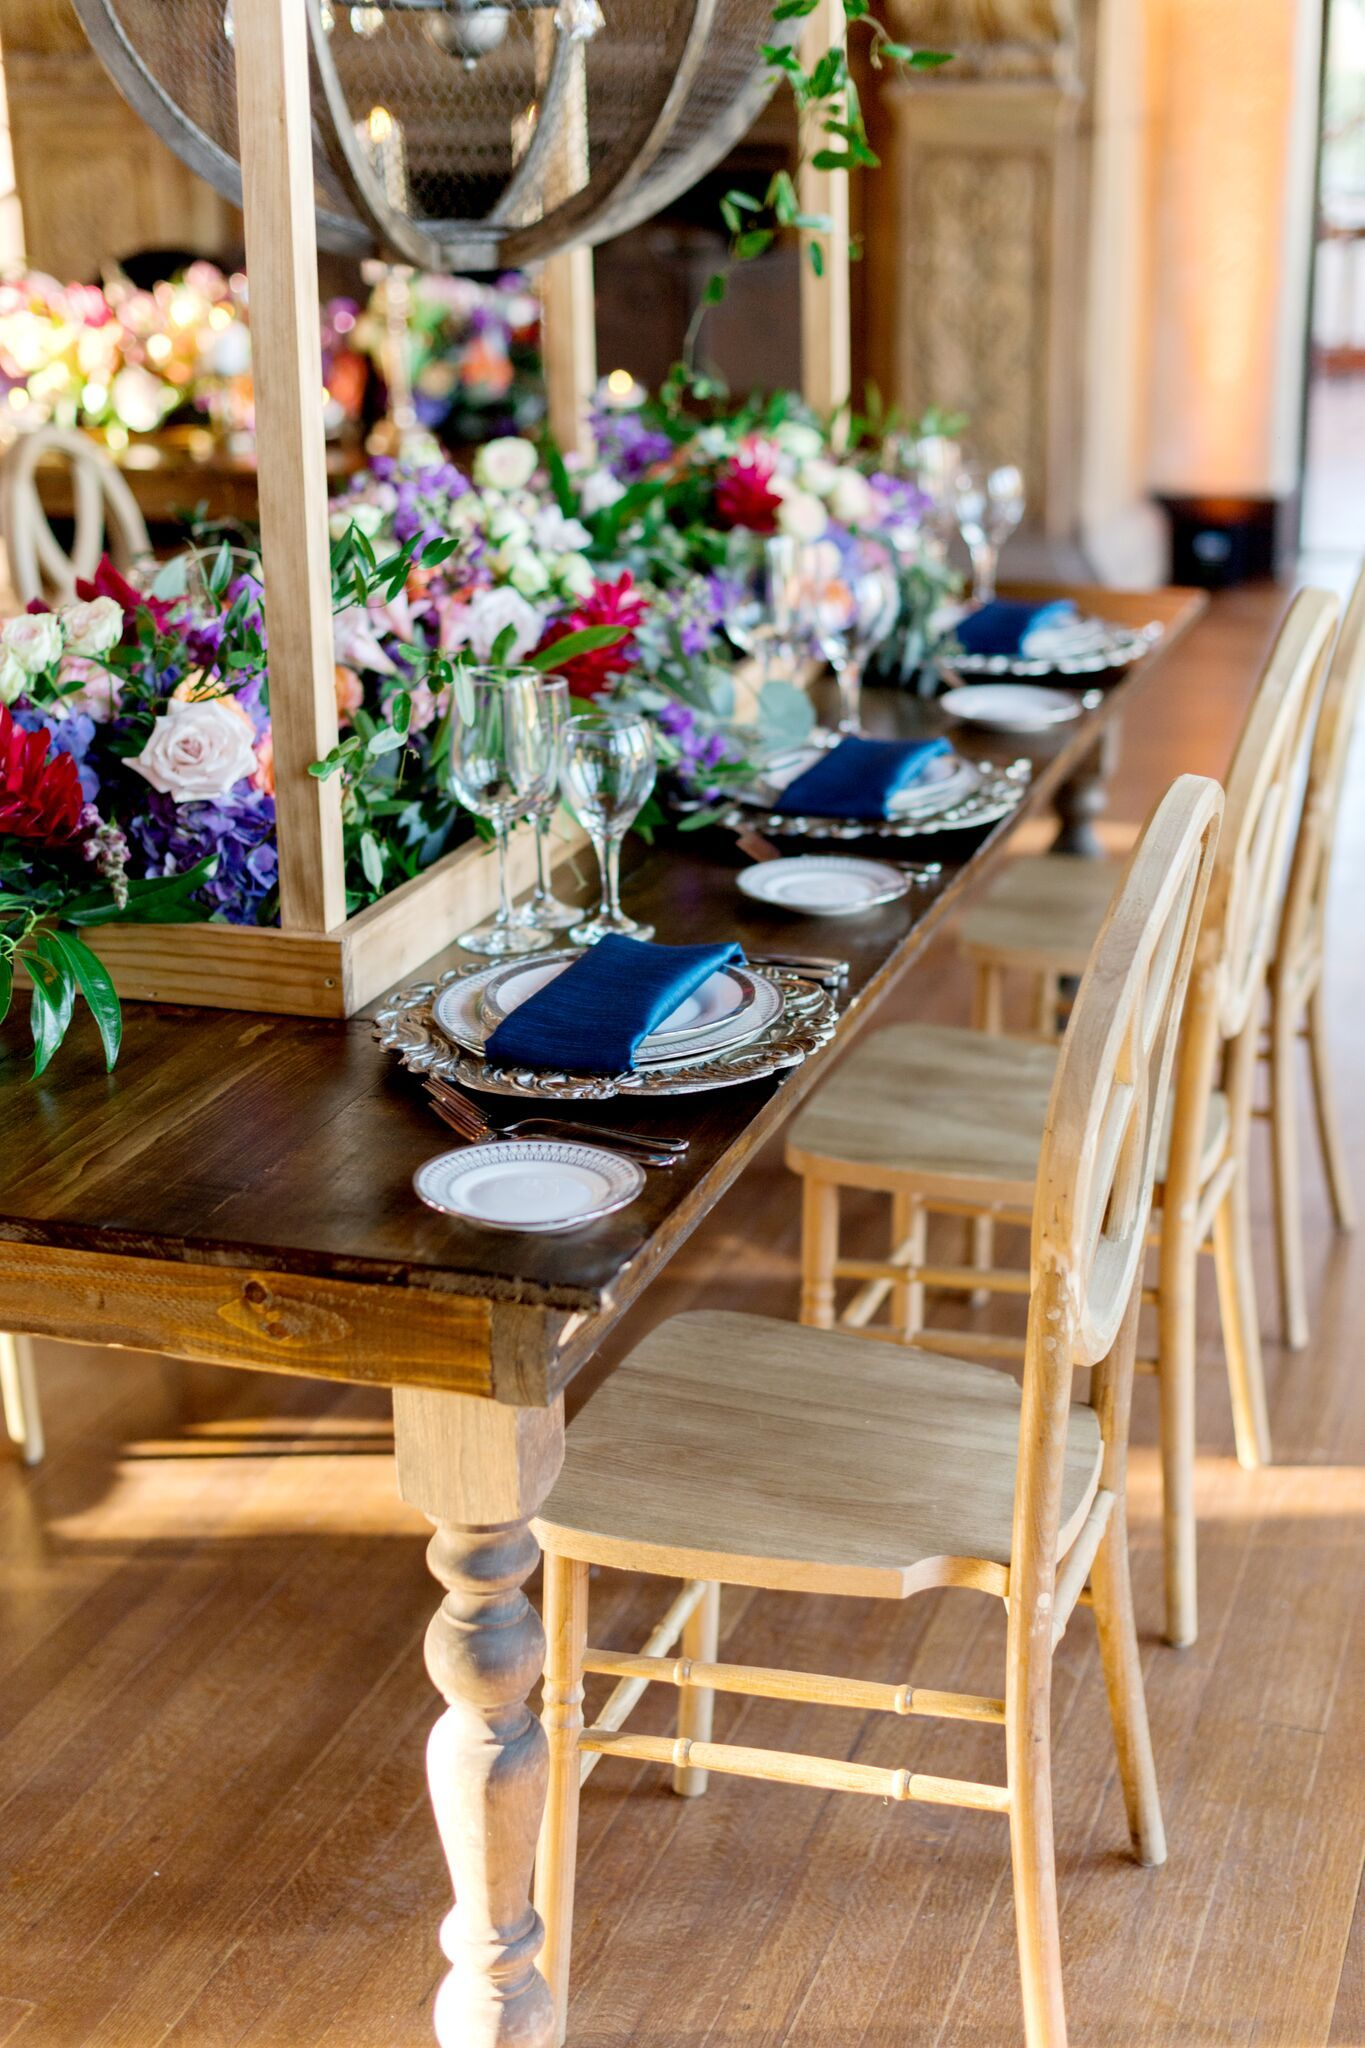 table chair rentals orlando gym ball south africa vineyard mismatched chairs wedding and party style decor floral tablescape ceremony reception colors events vendors florida